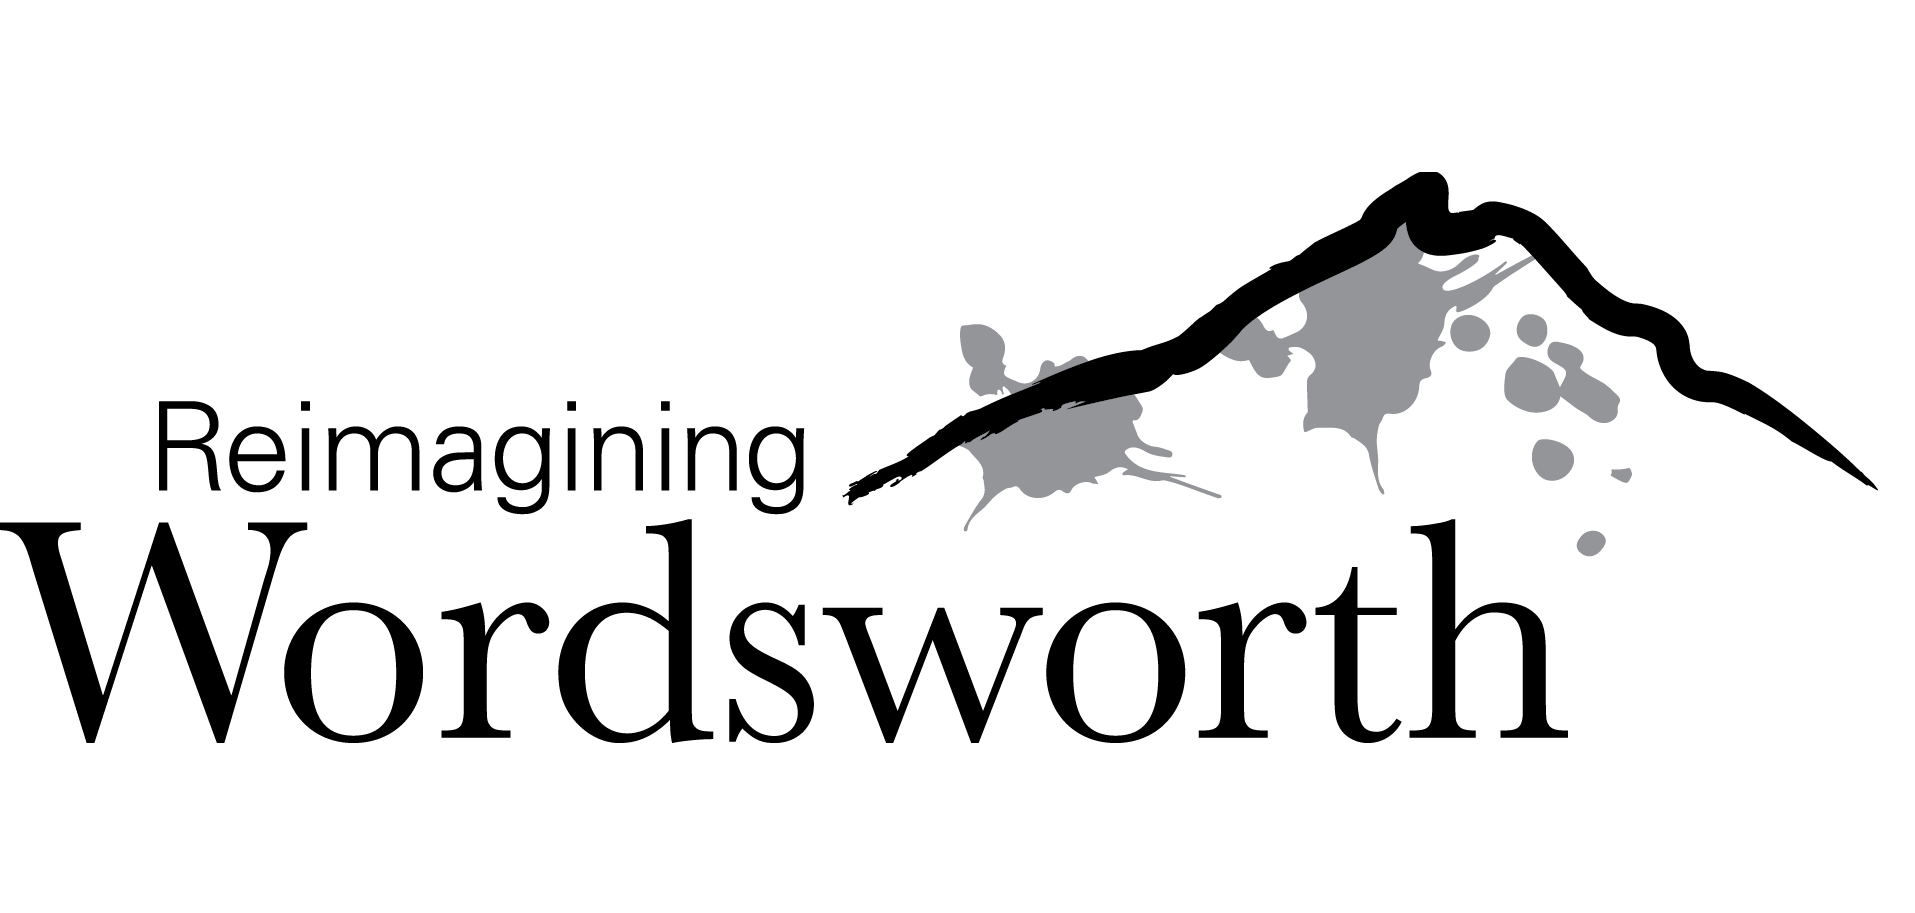 Reimagining Wordsworth logo